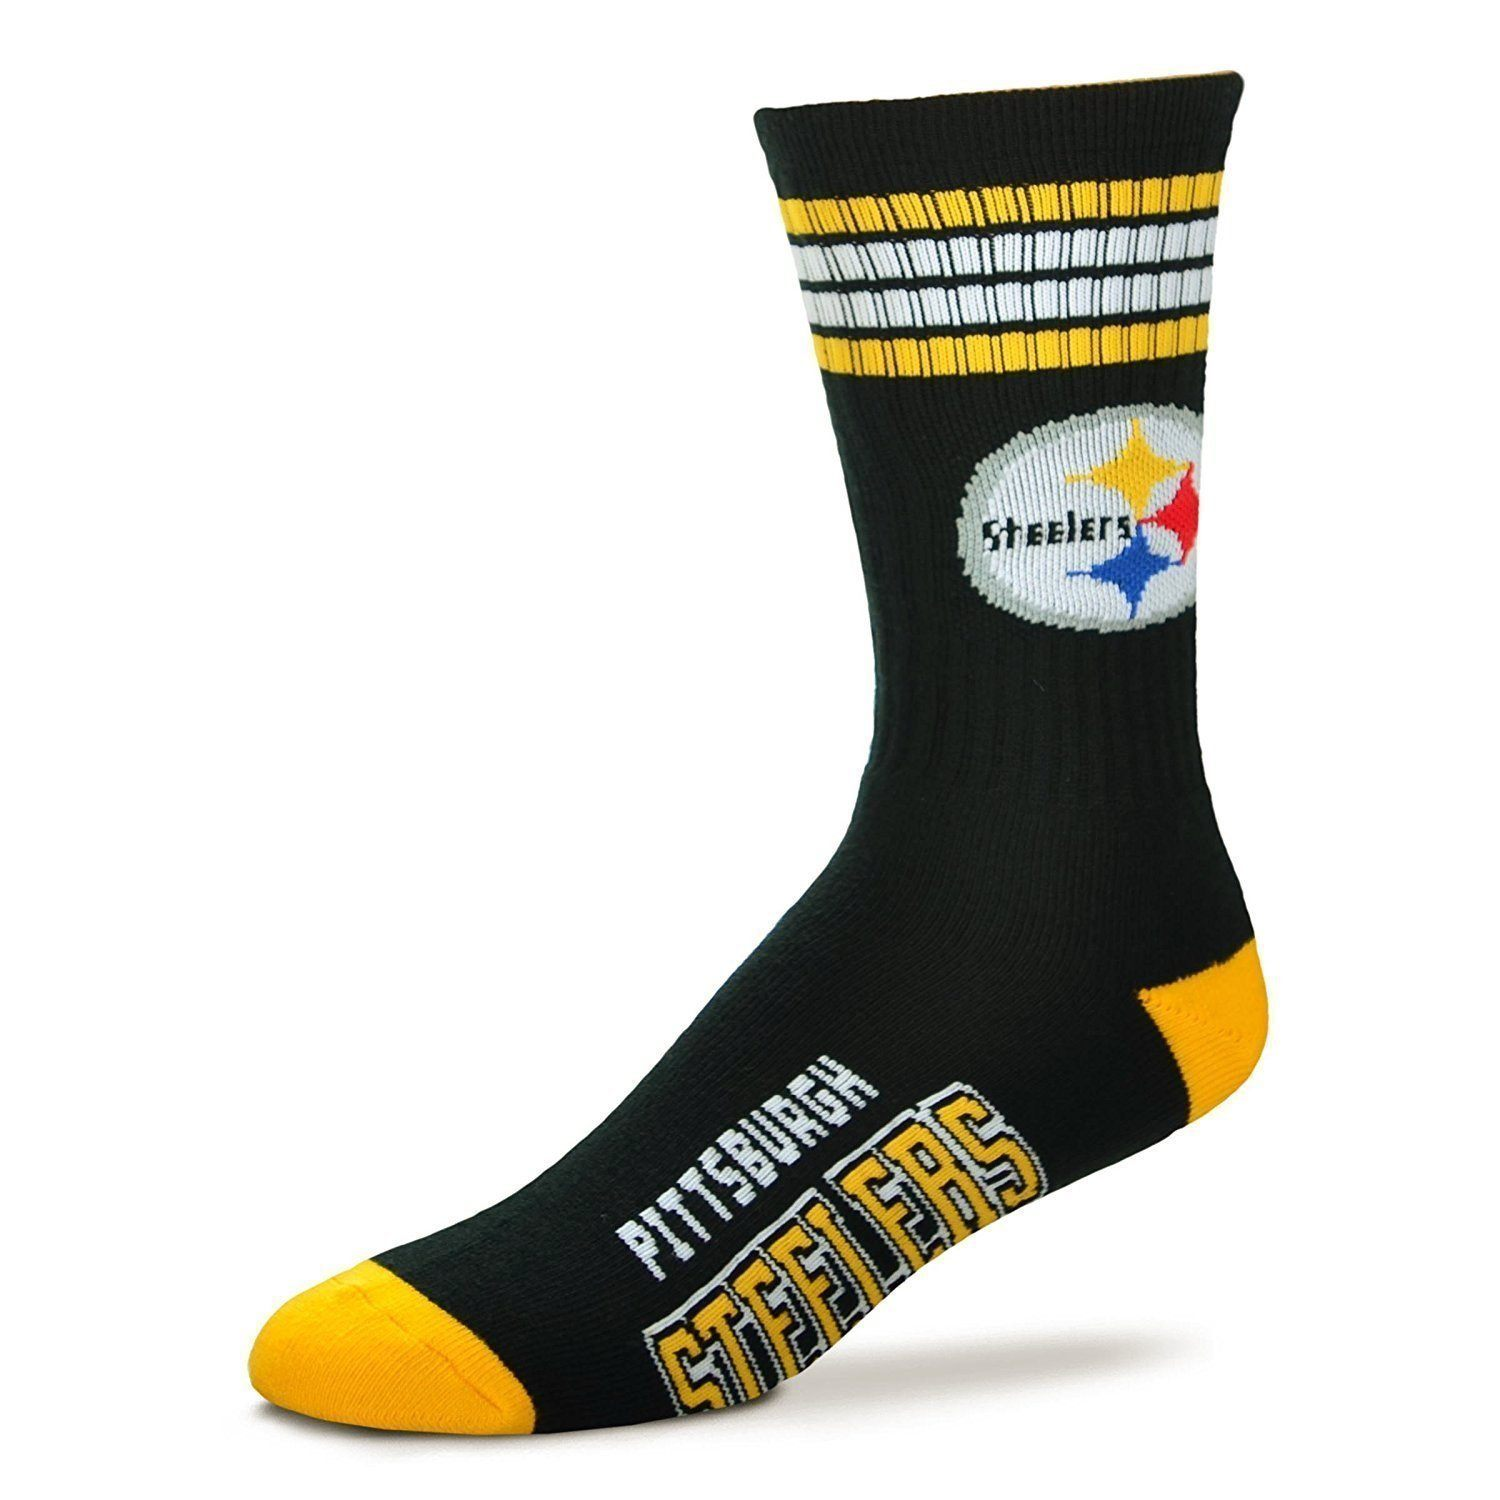 For Bare Feet - Pittsburgh Steelers NFL Crew Socks | Men's - Knock Your Socks Off